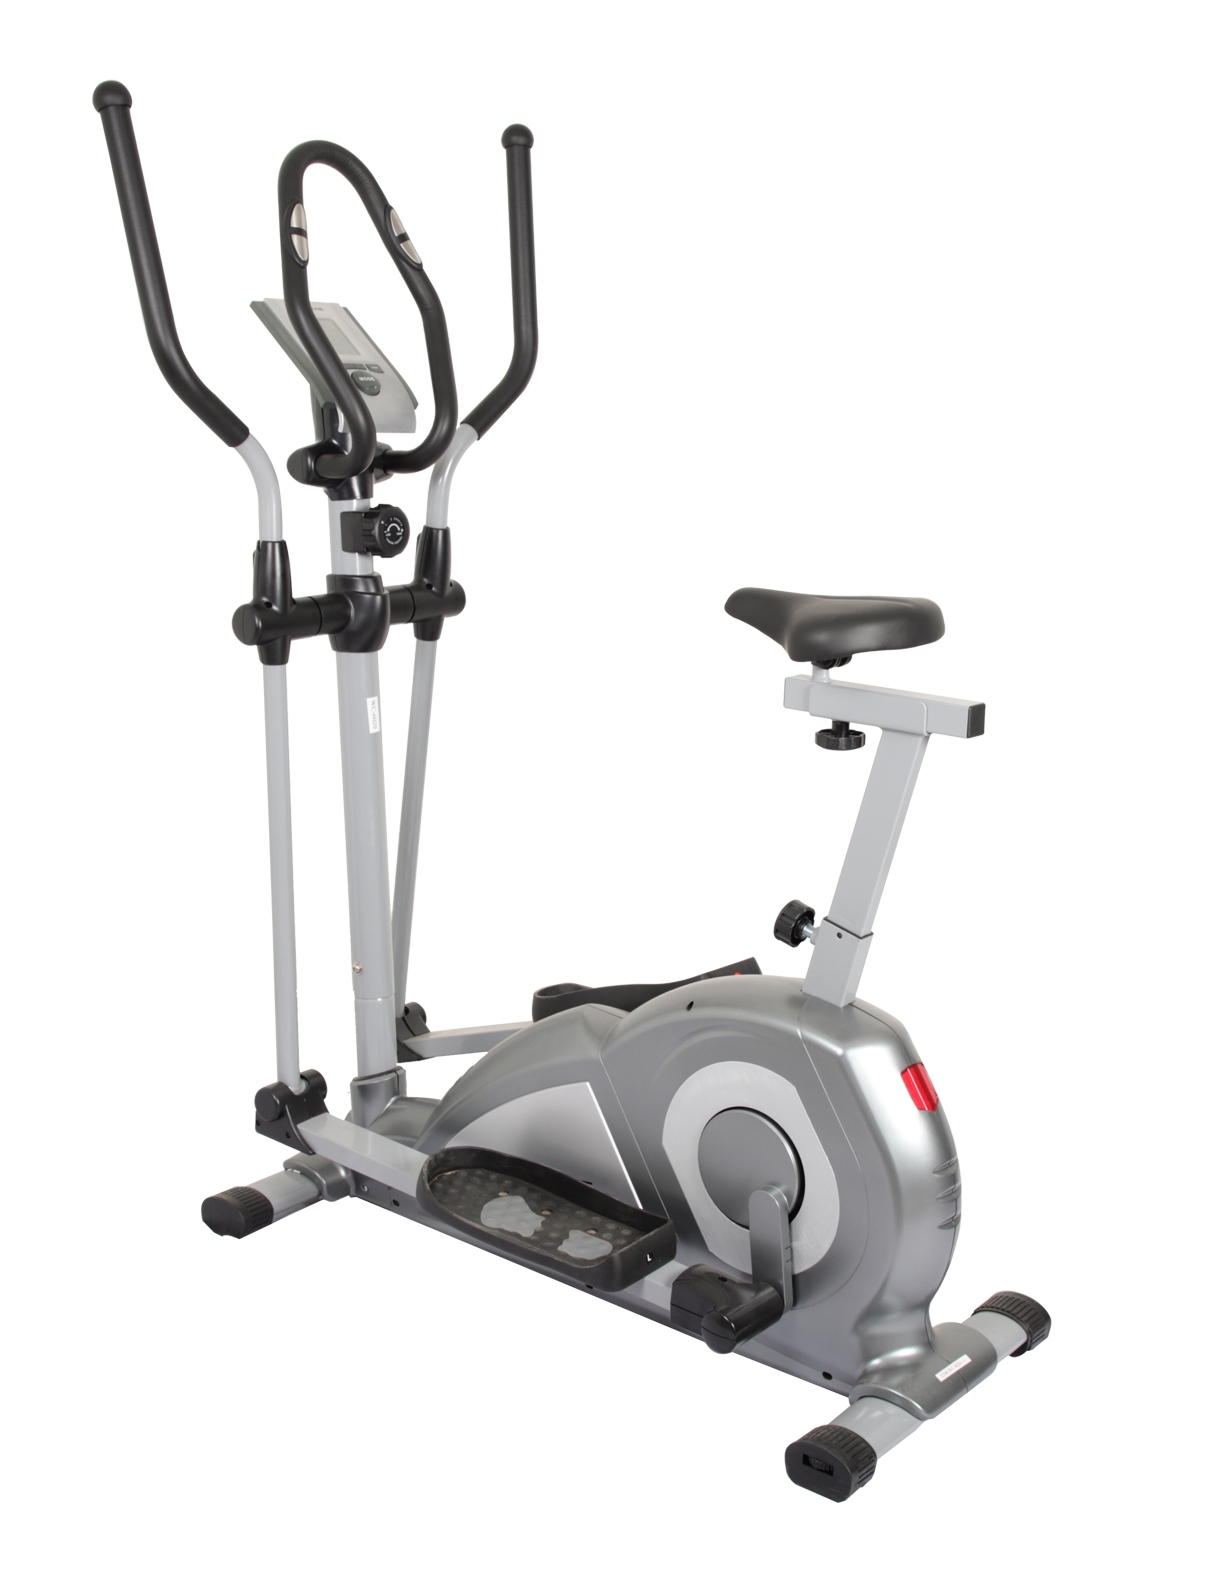 WC 6020 ELLIPTICAL CROSS TRAINER